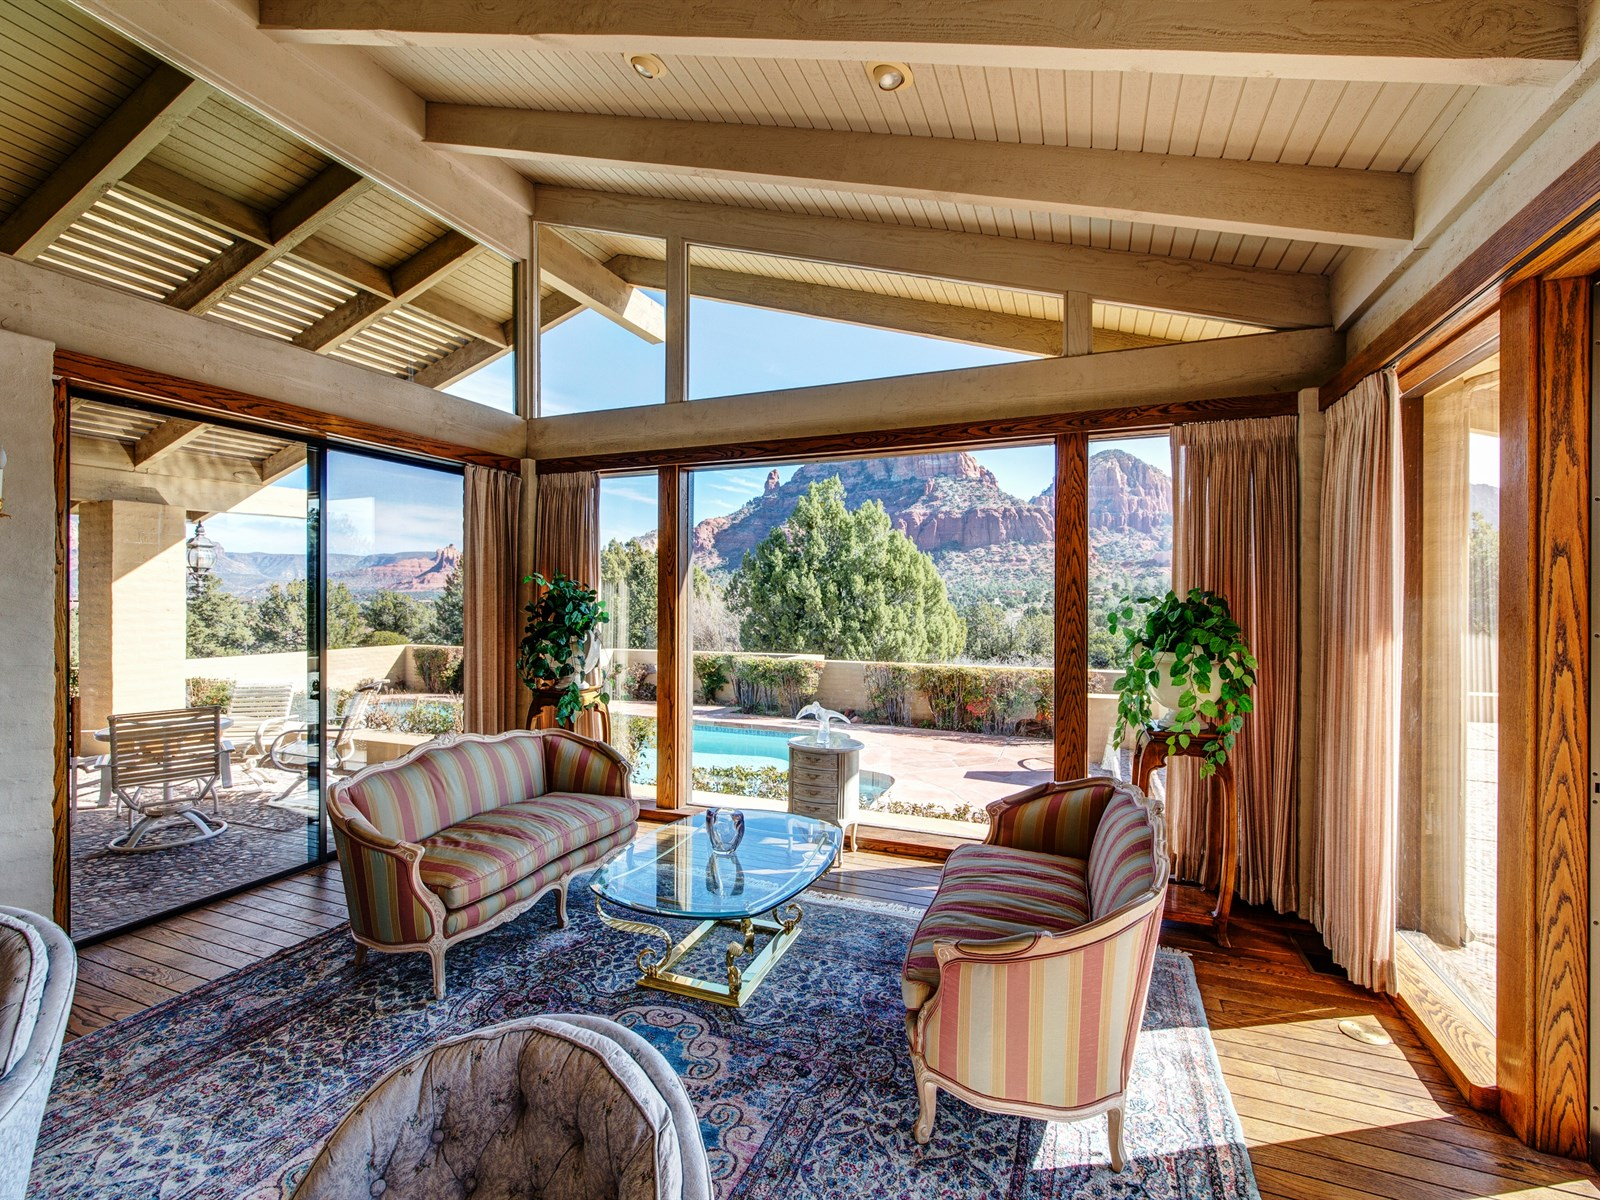 Single Family Home for Sale at Remarkable Sedona Home 130 Sky Line Sedona, Arizona 86336 United States